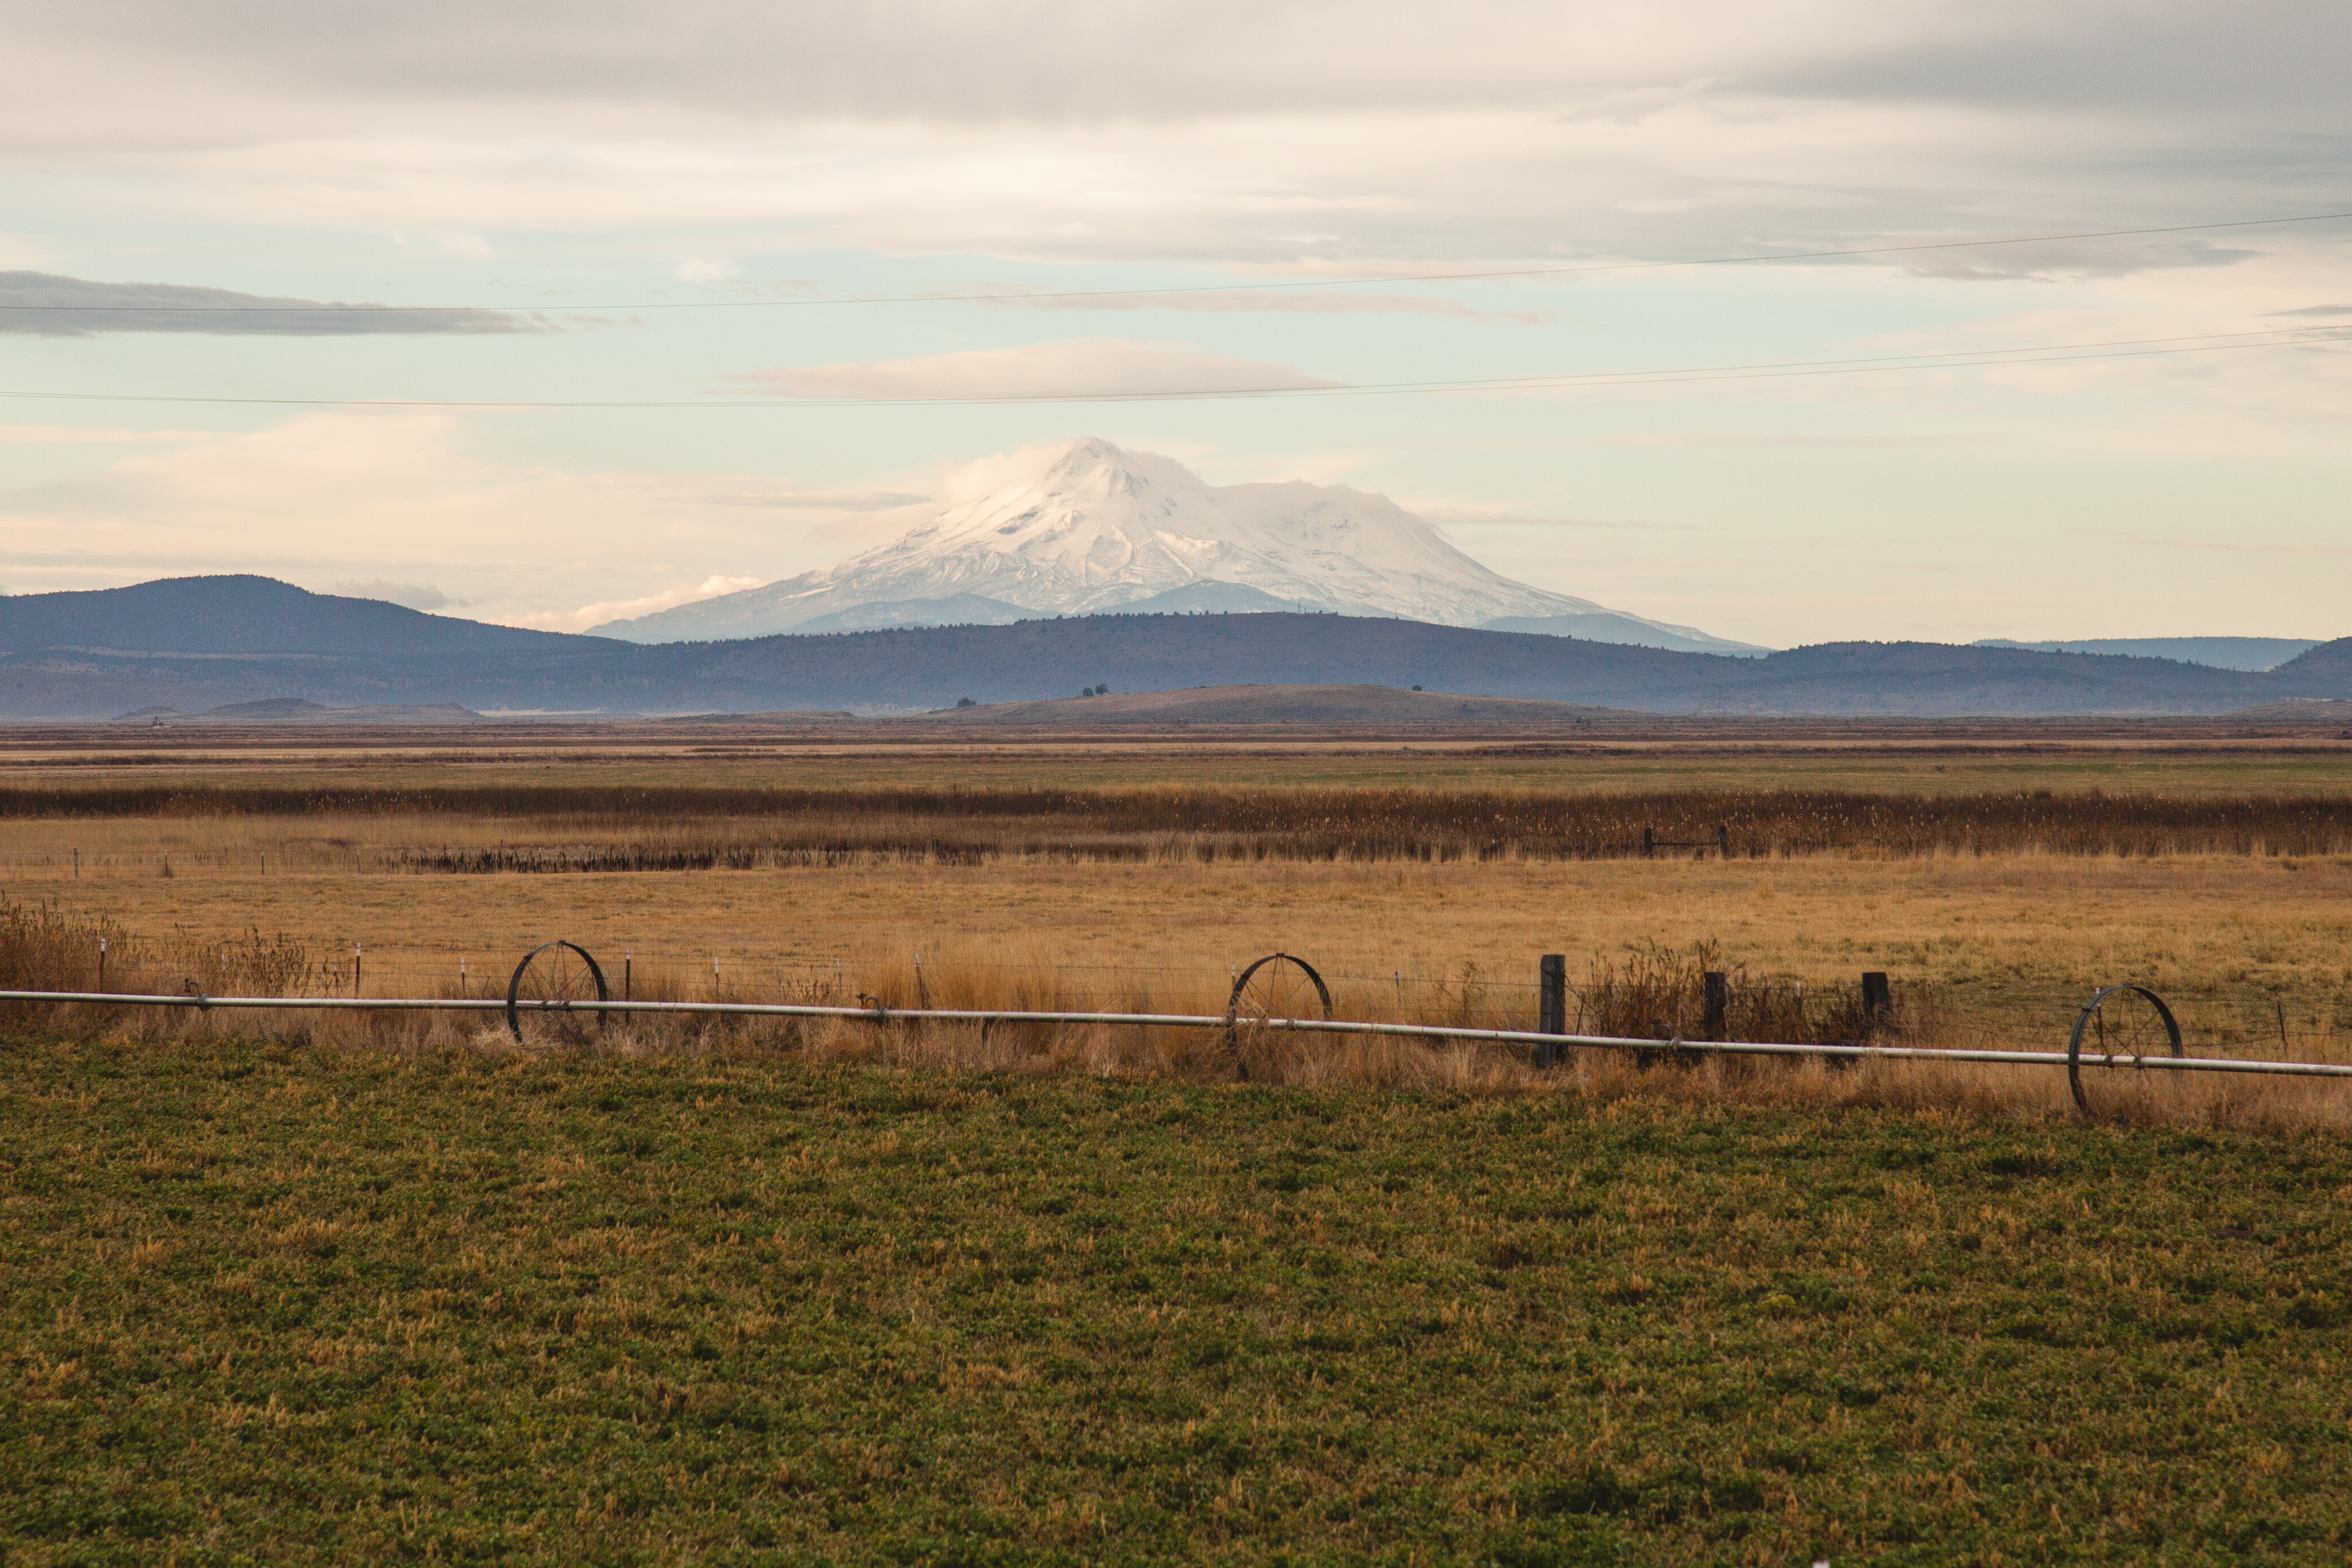 View of farmland with a snow-capped mountain in the distance